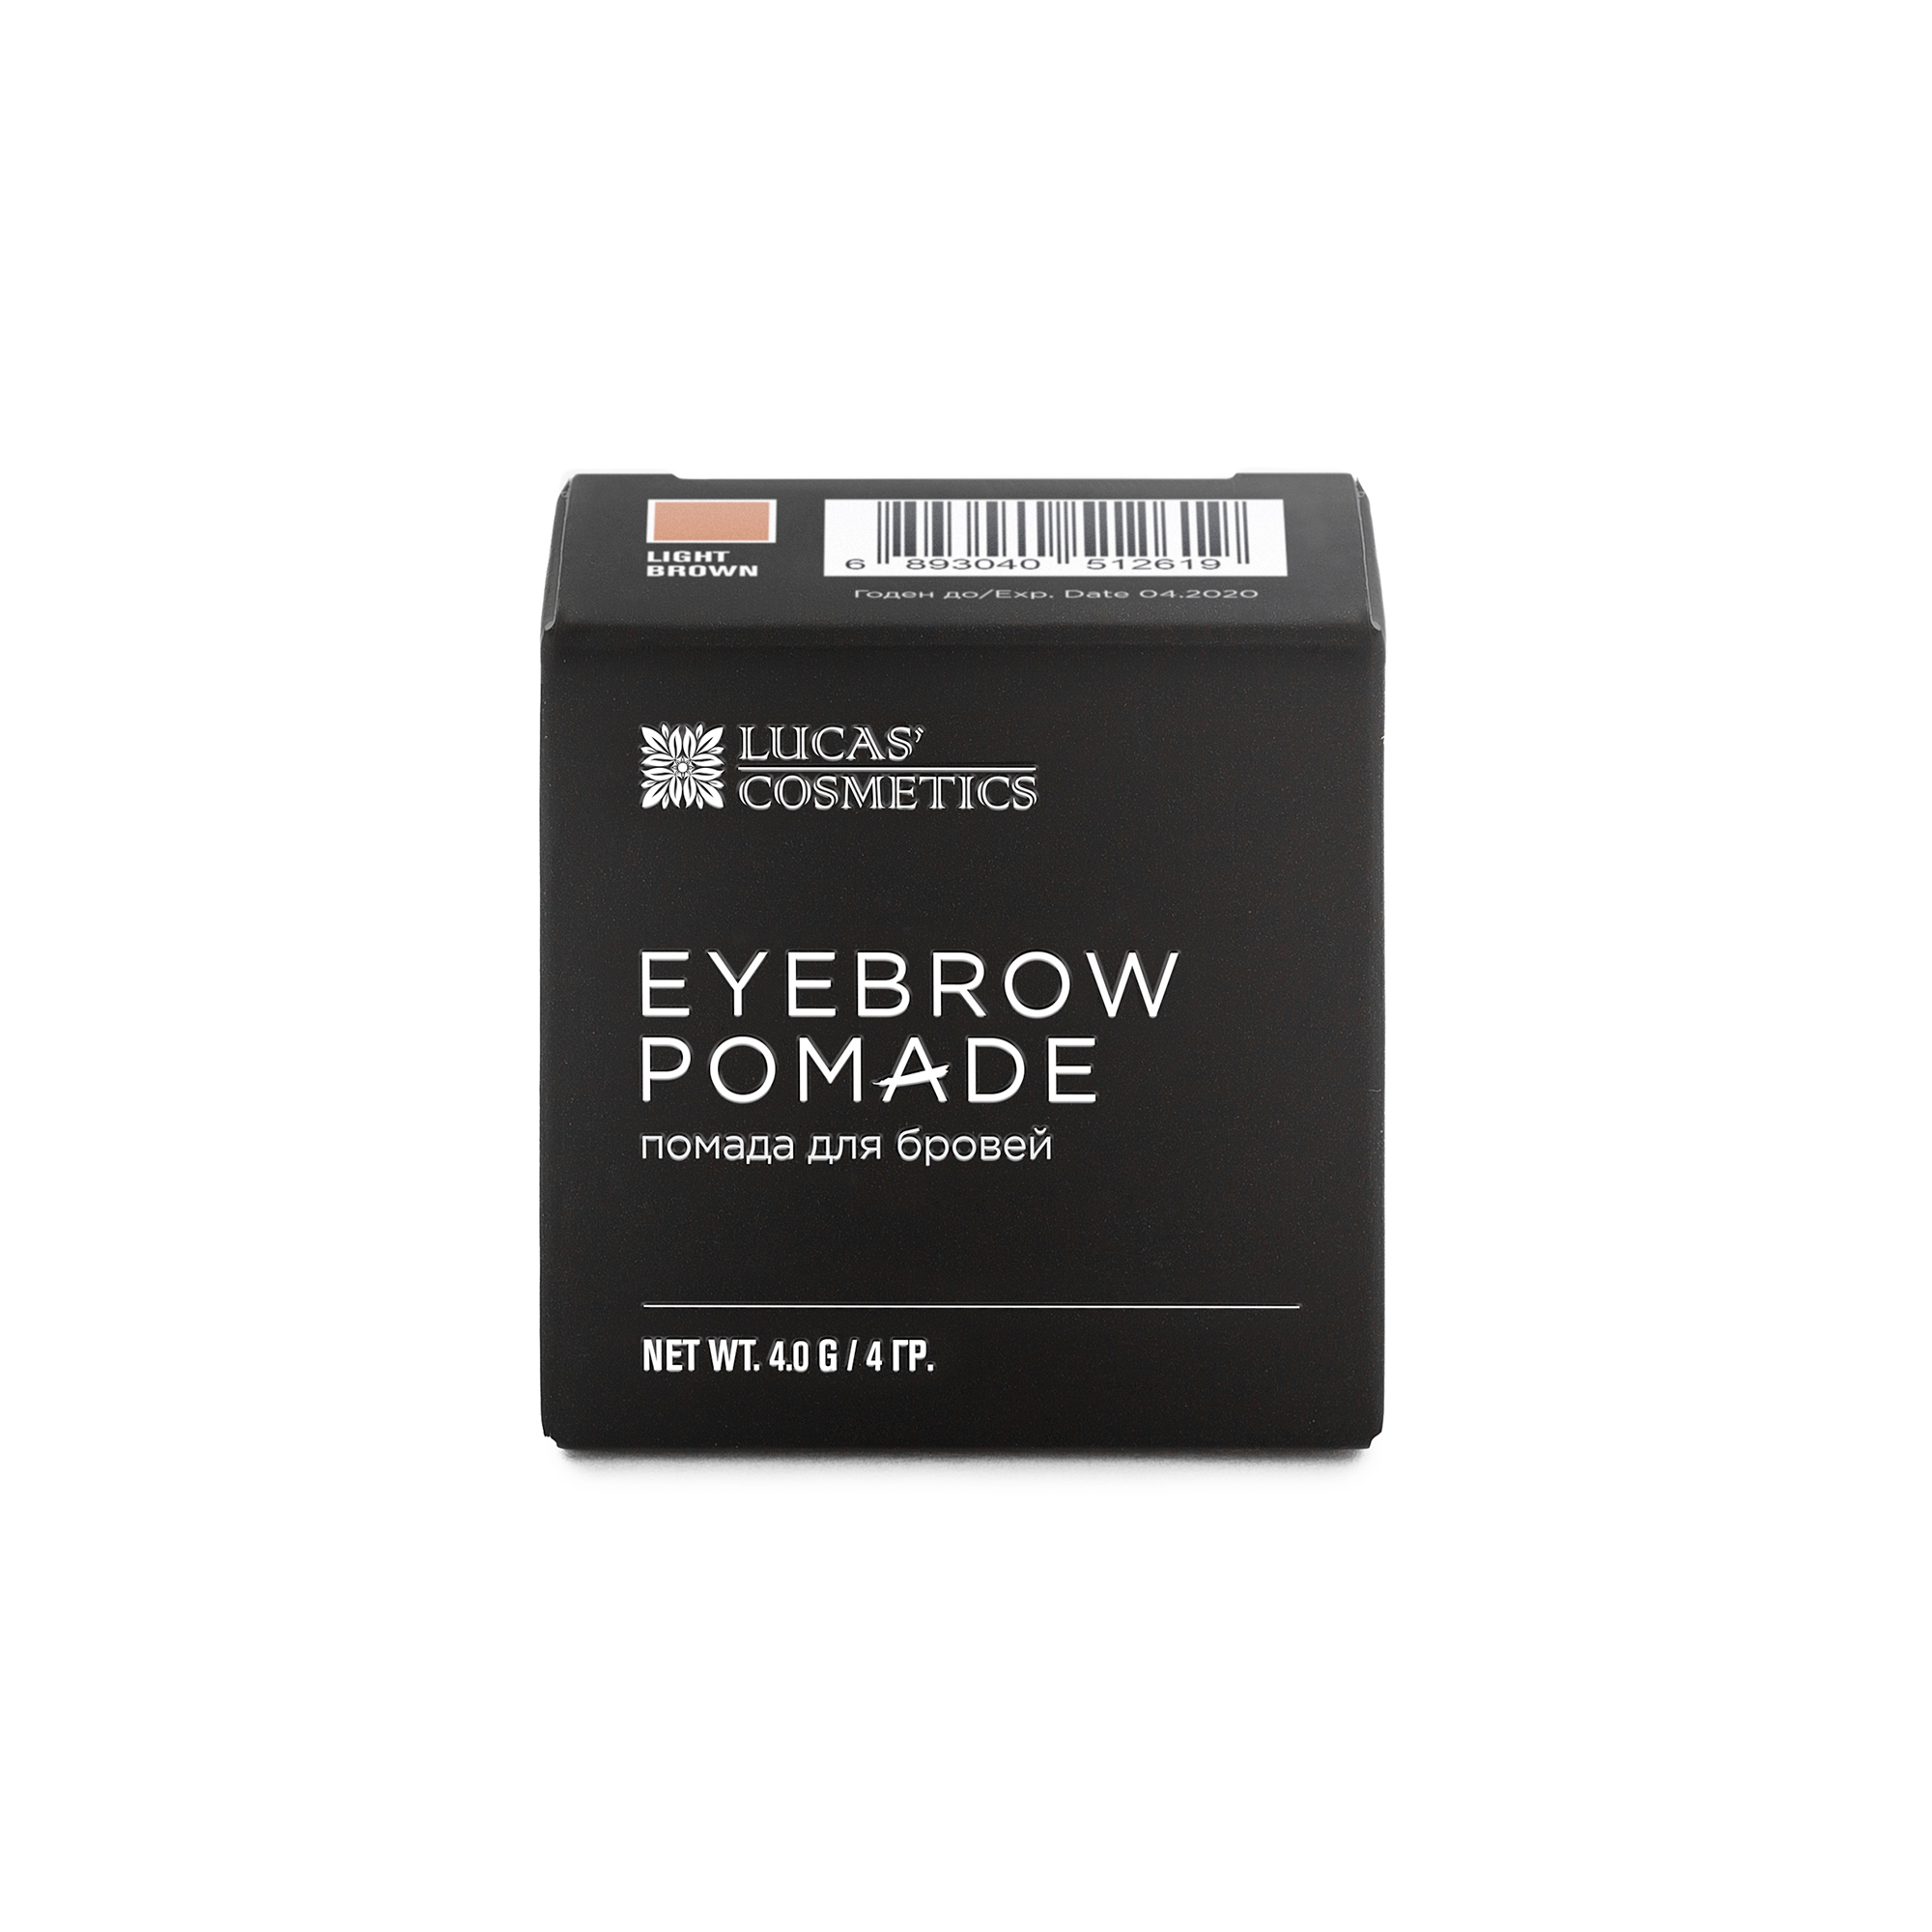 Купить LUCAS' COSMETICS Помада для бровей, светло-коричневый / Brow pomade light brown 4 г